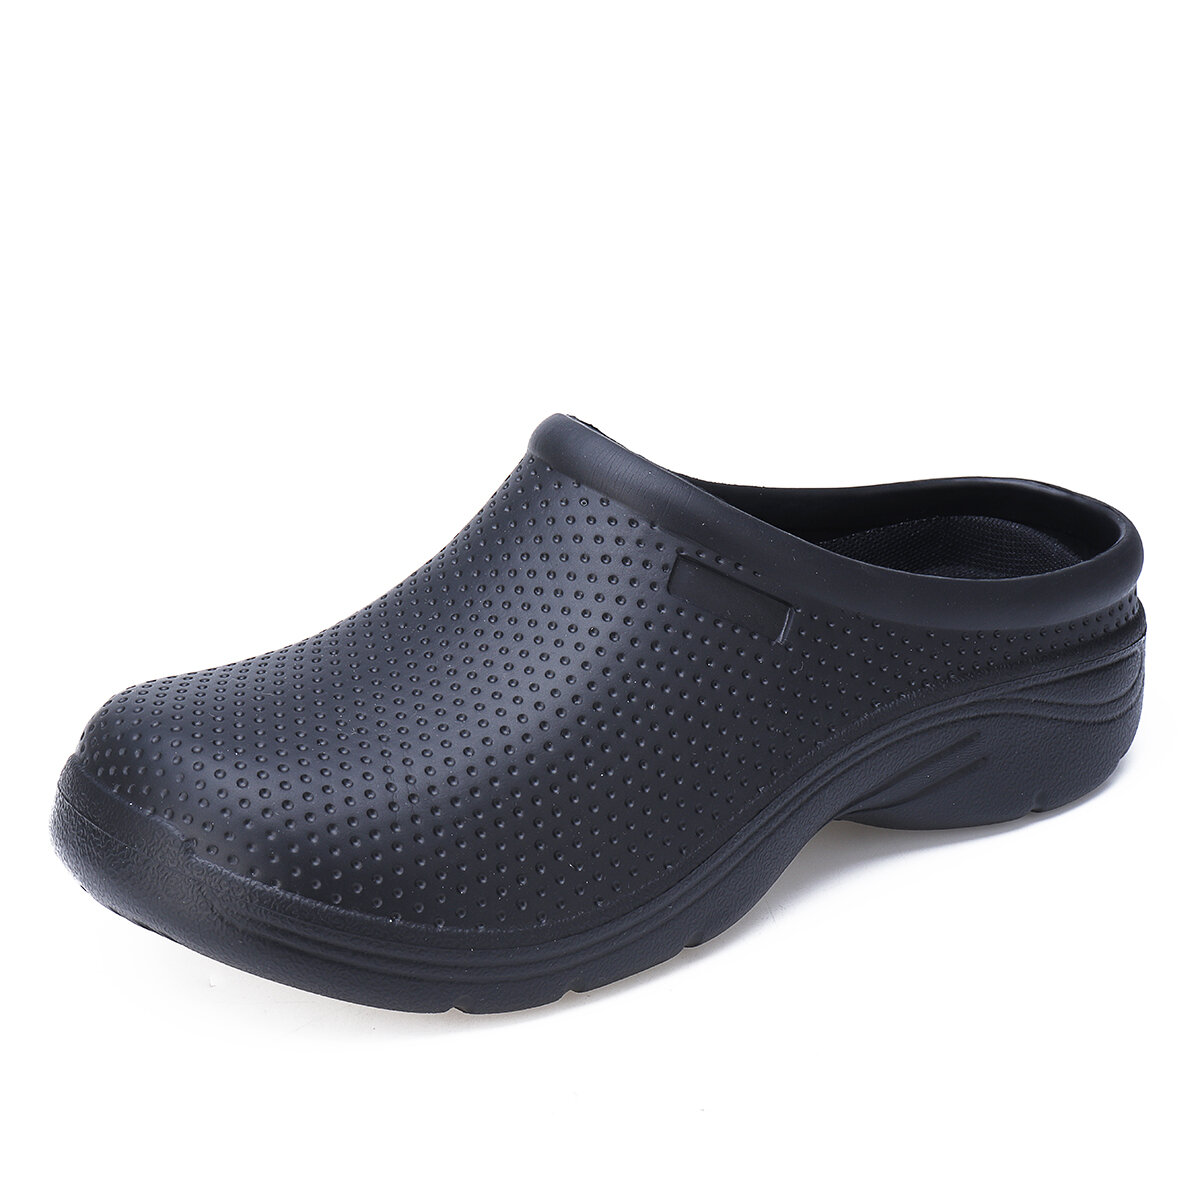 Women Working Chef Clogs Non Slip Sandals Round ToeBackless Nursing Shoes